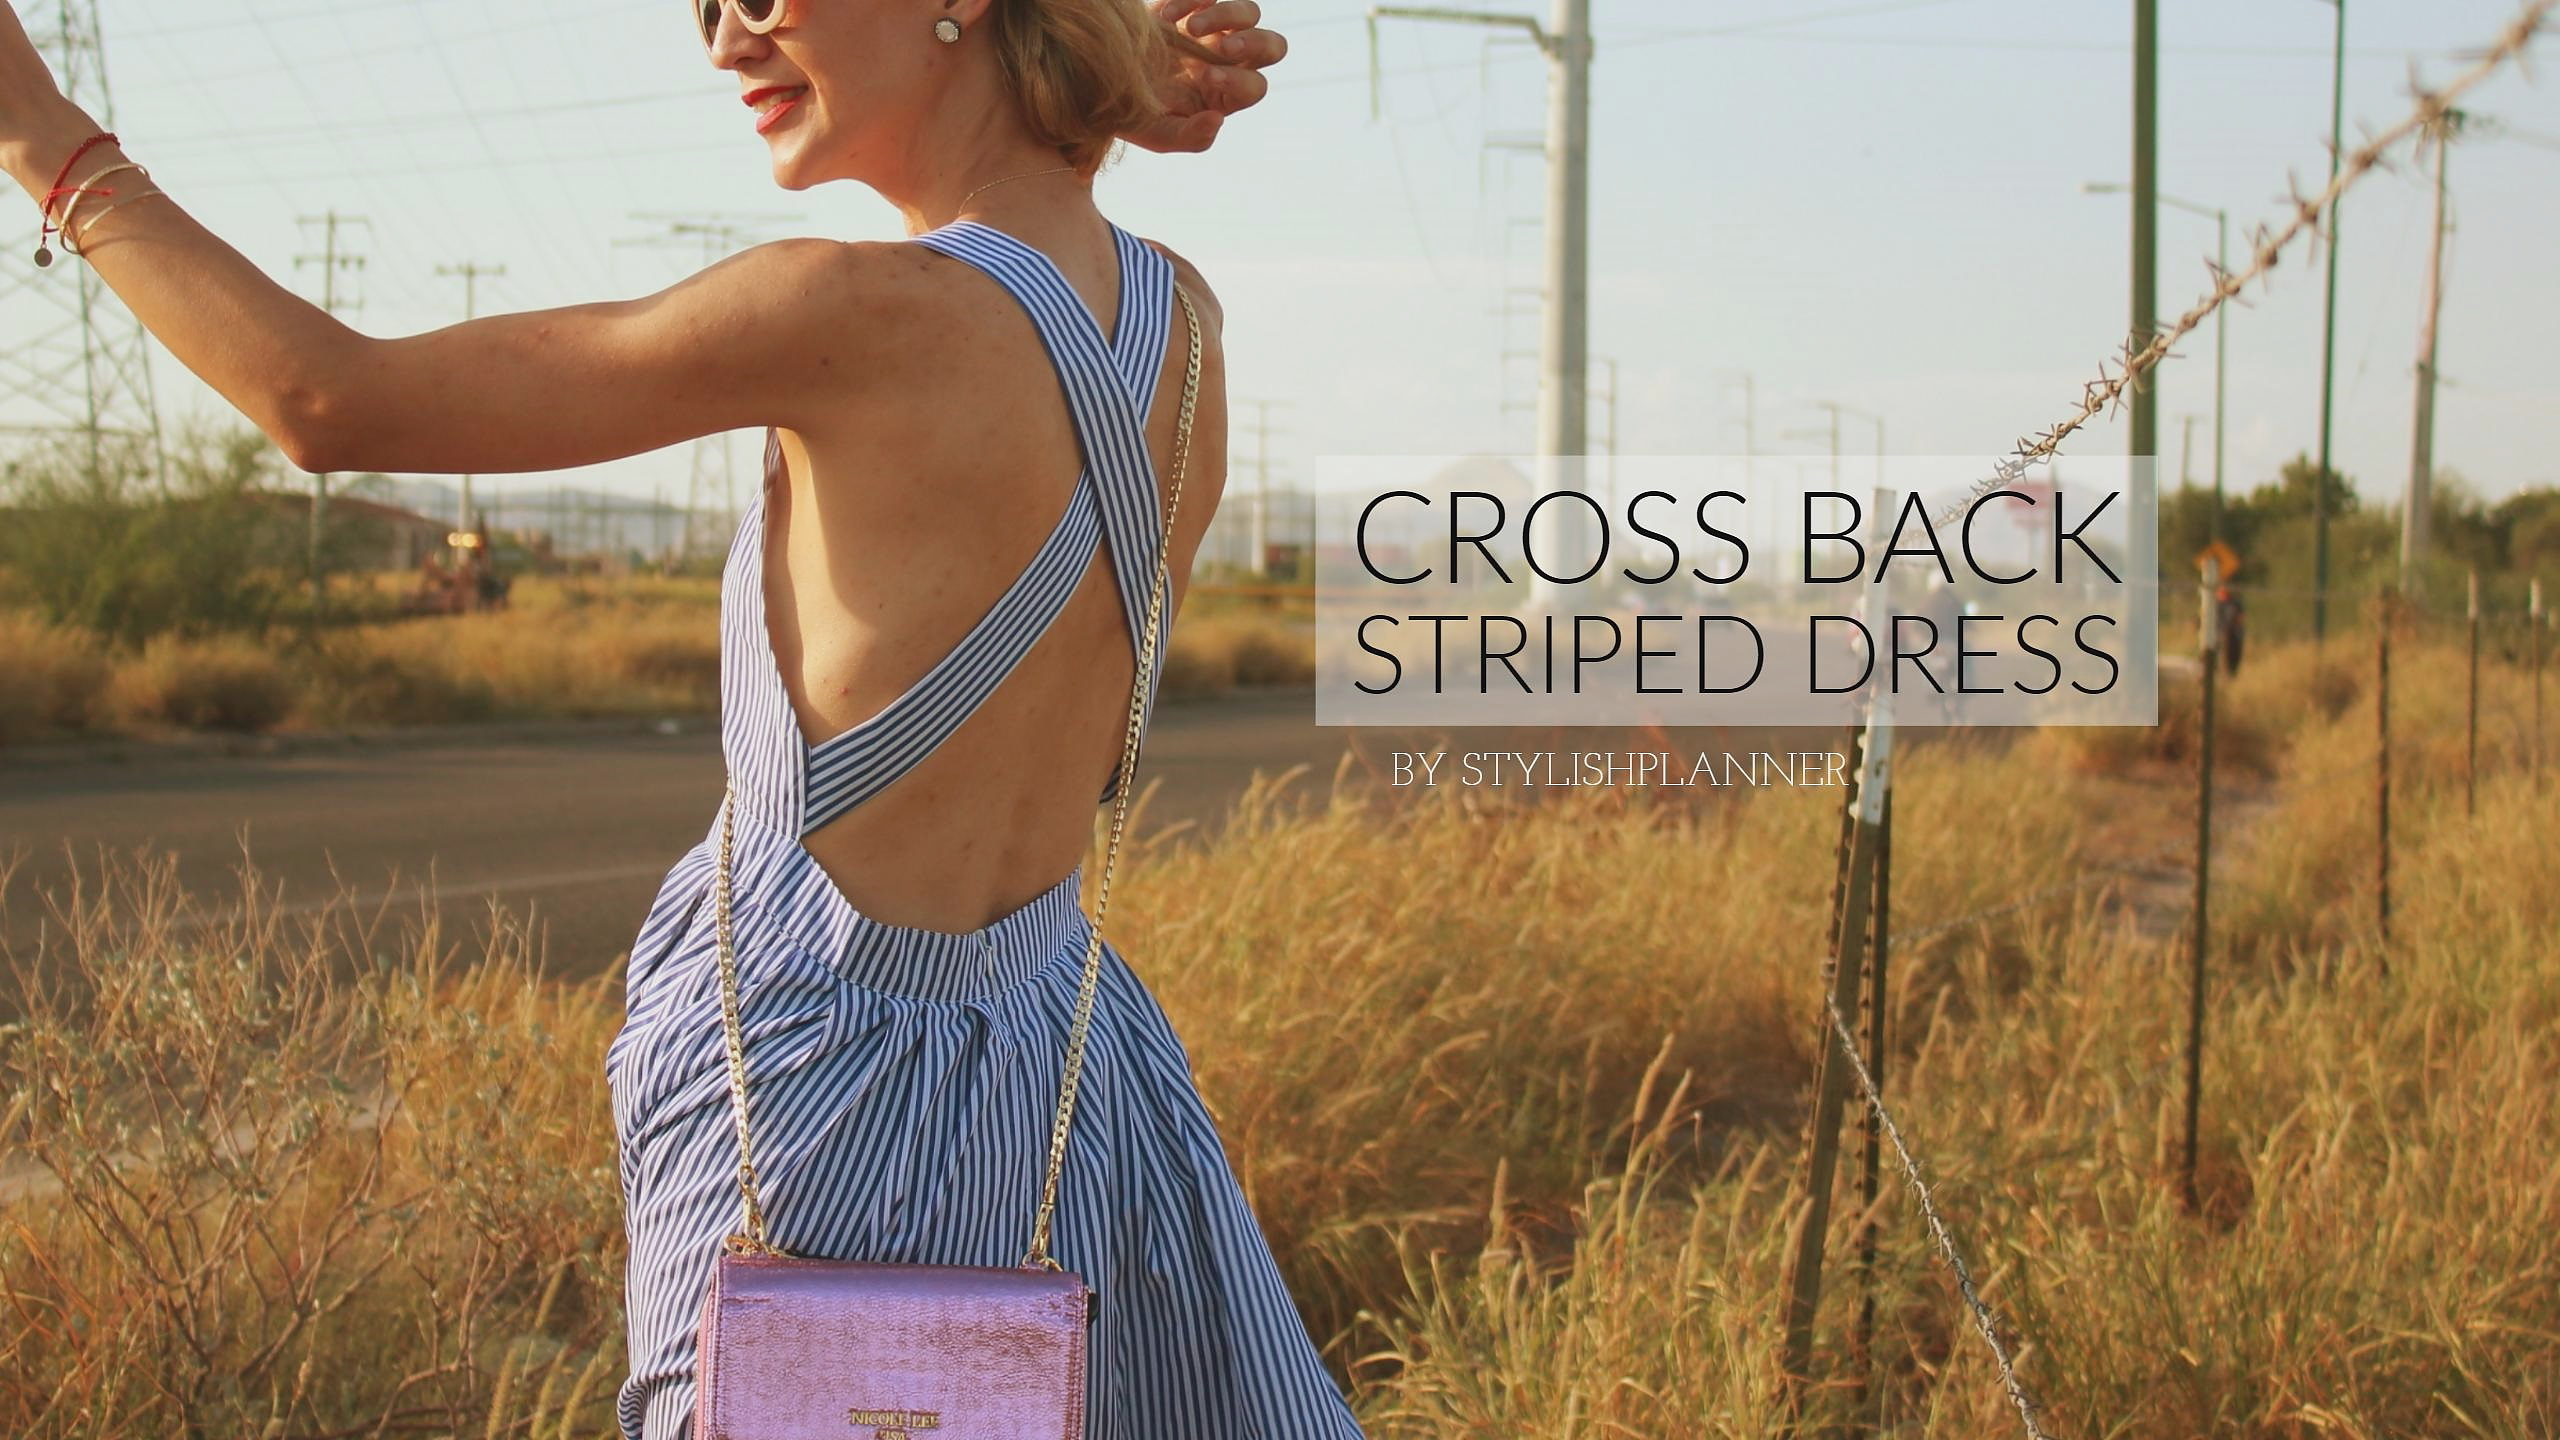 Cross back striped dress